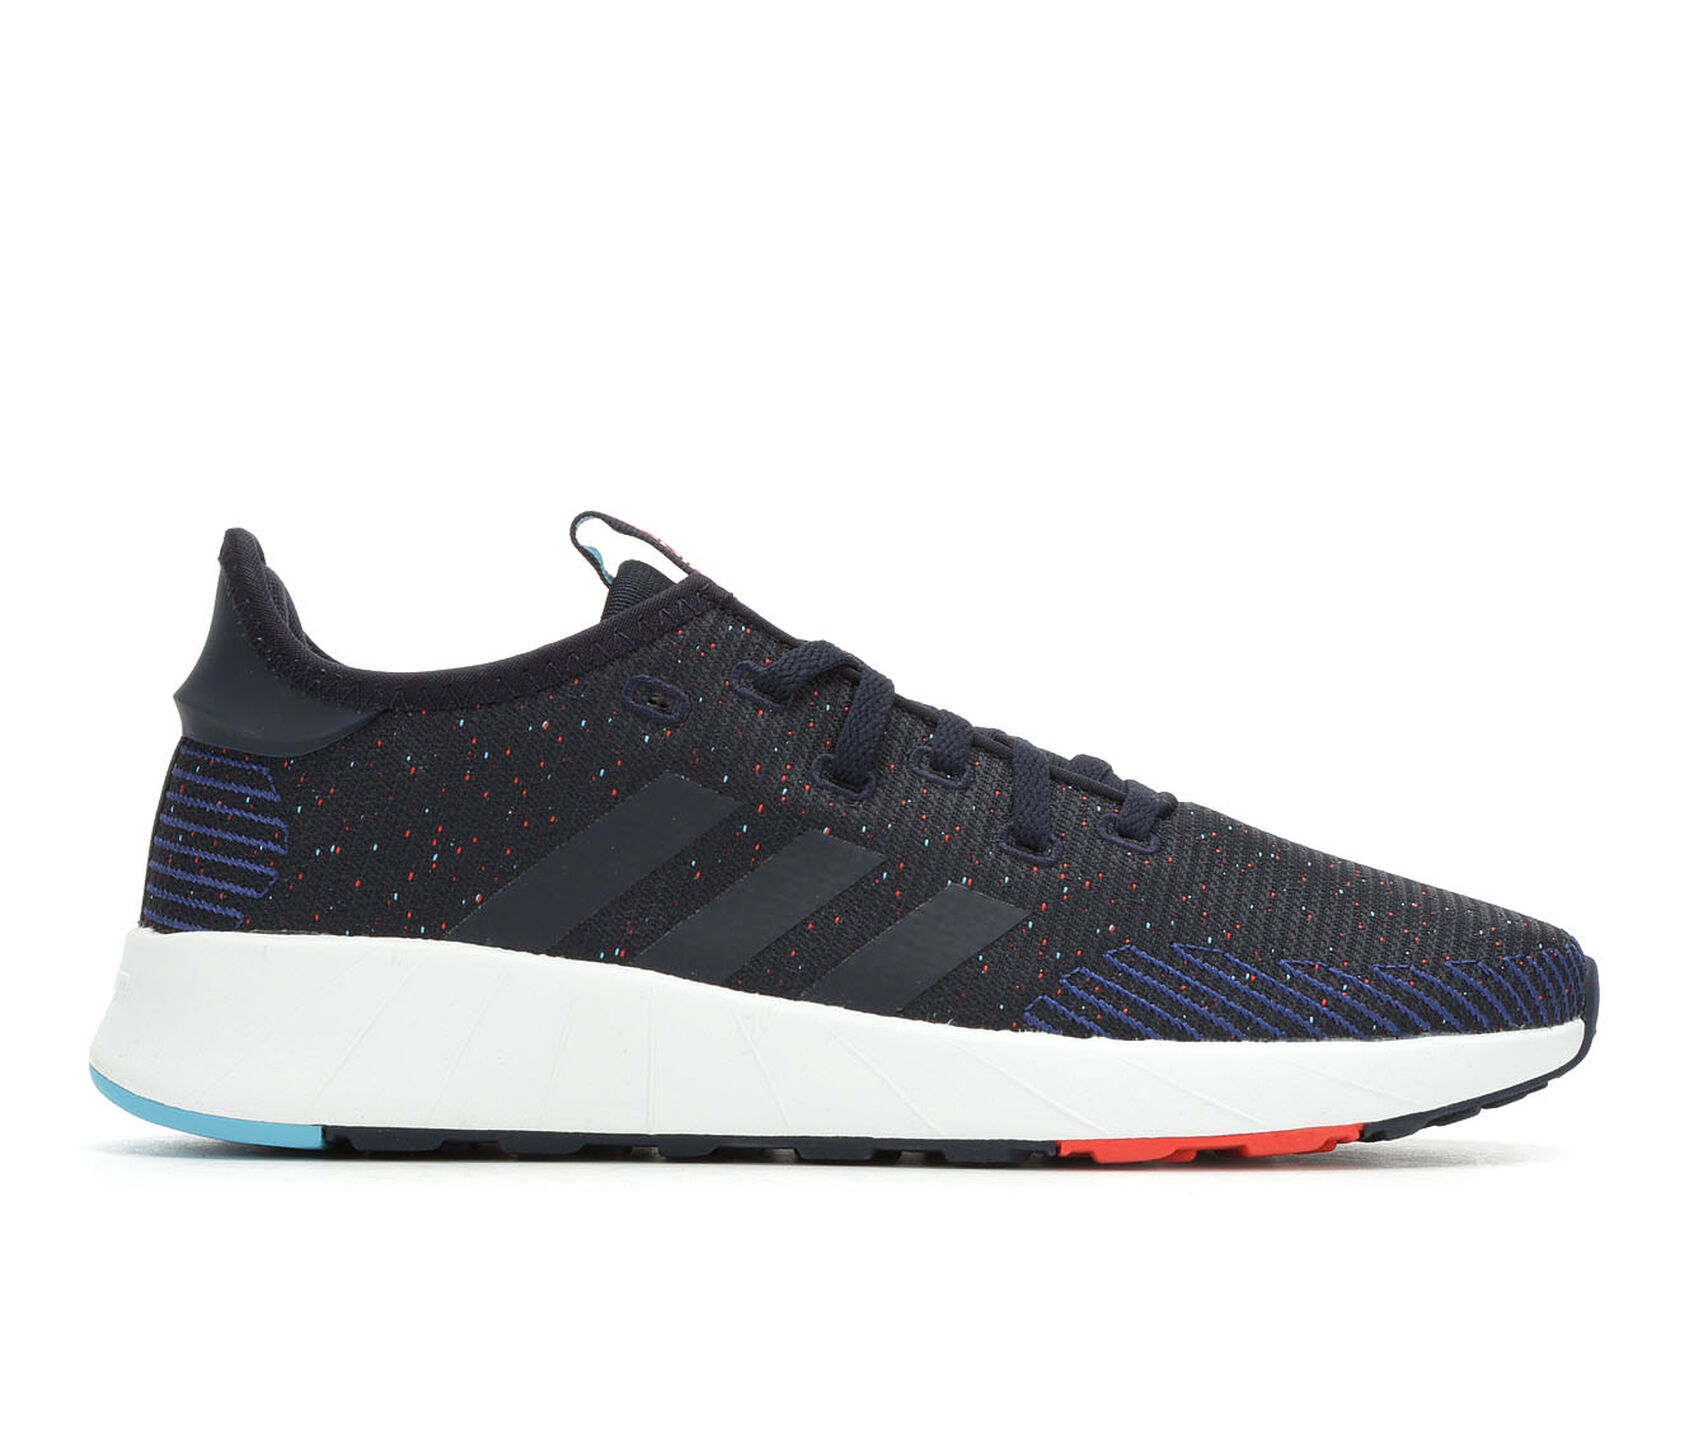 outlet store cd1d9 b6db4 Womens Adidas Questar X Sneakers  Shoe Carnival